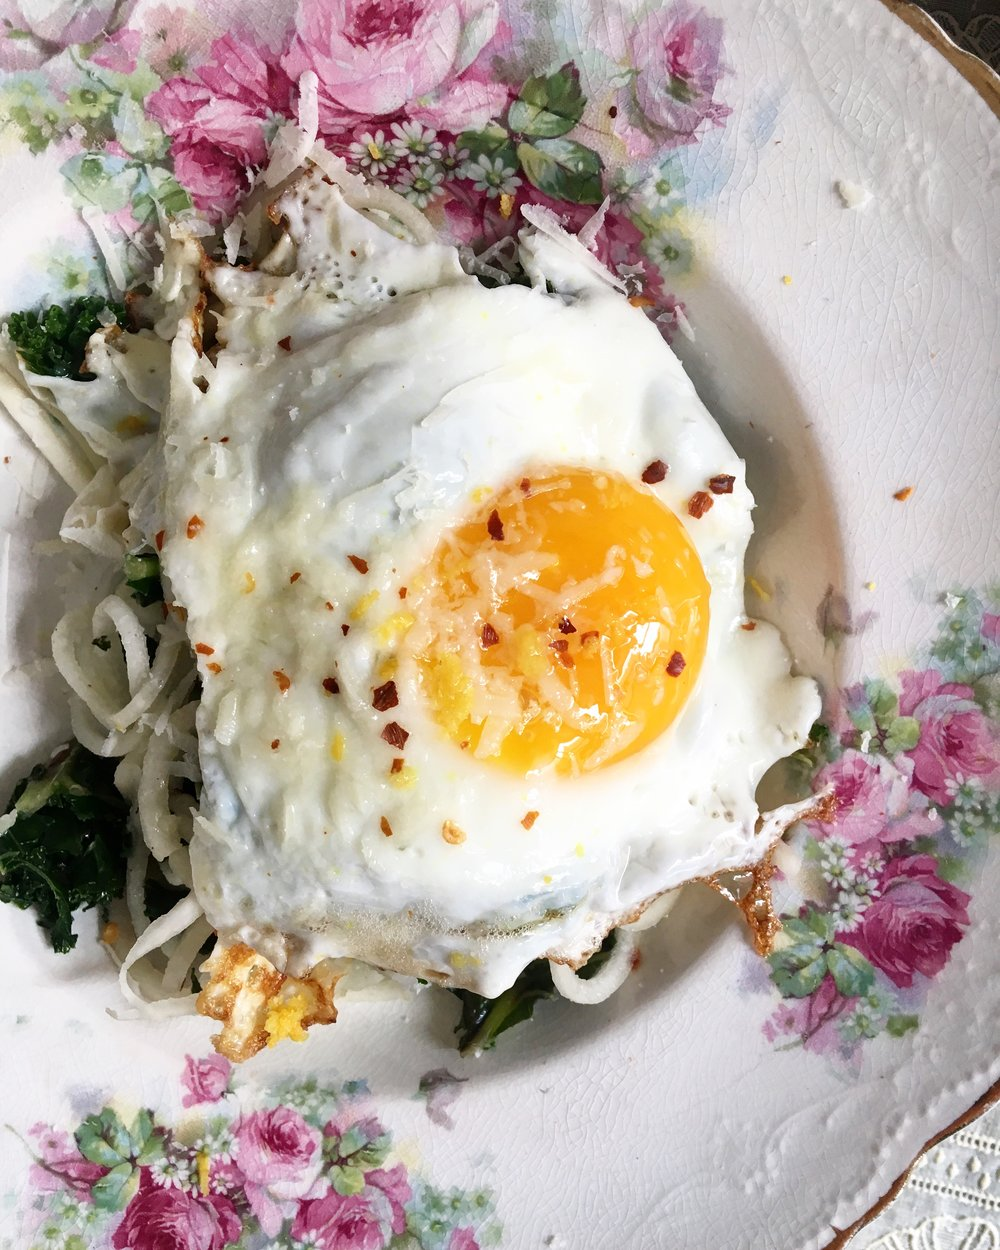 12 Minute Meal: A Sunday Lunch of Turnip / Kale / Fried Egg